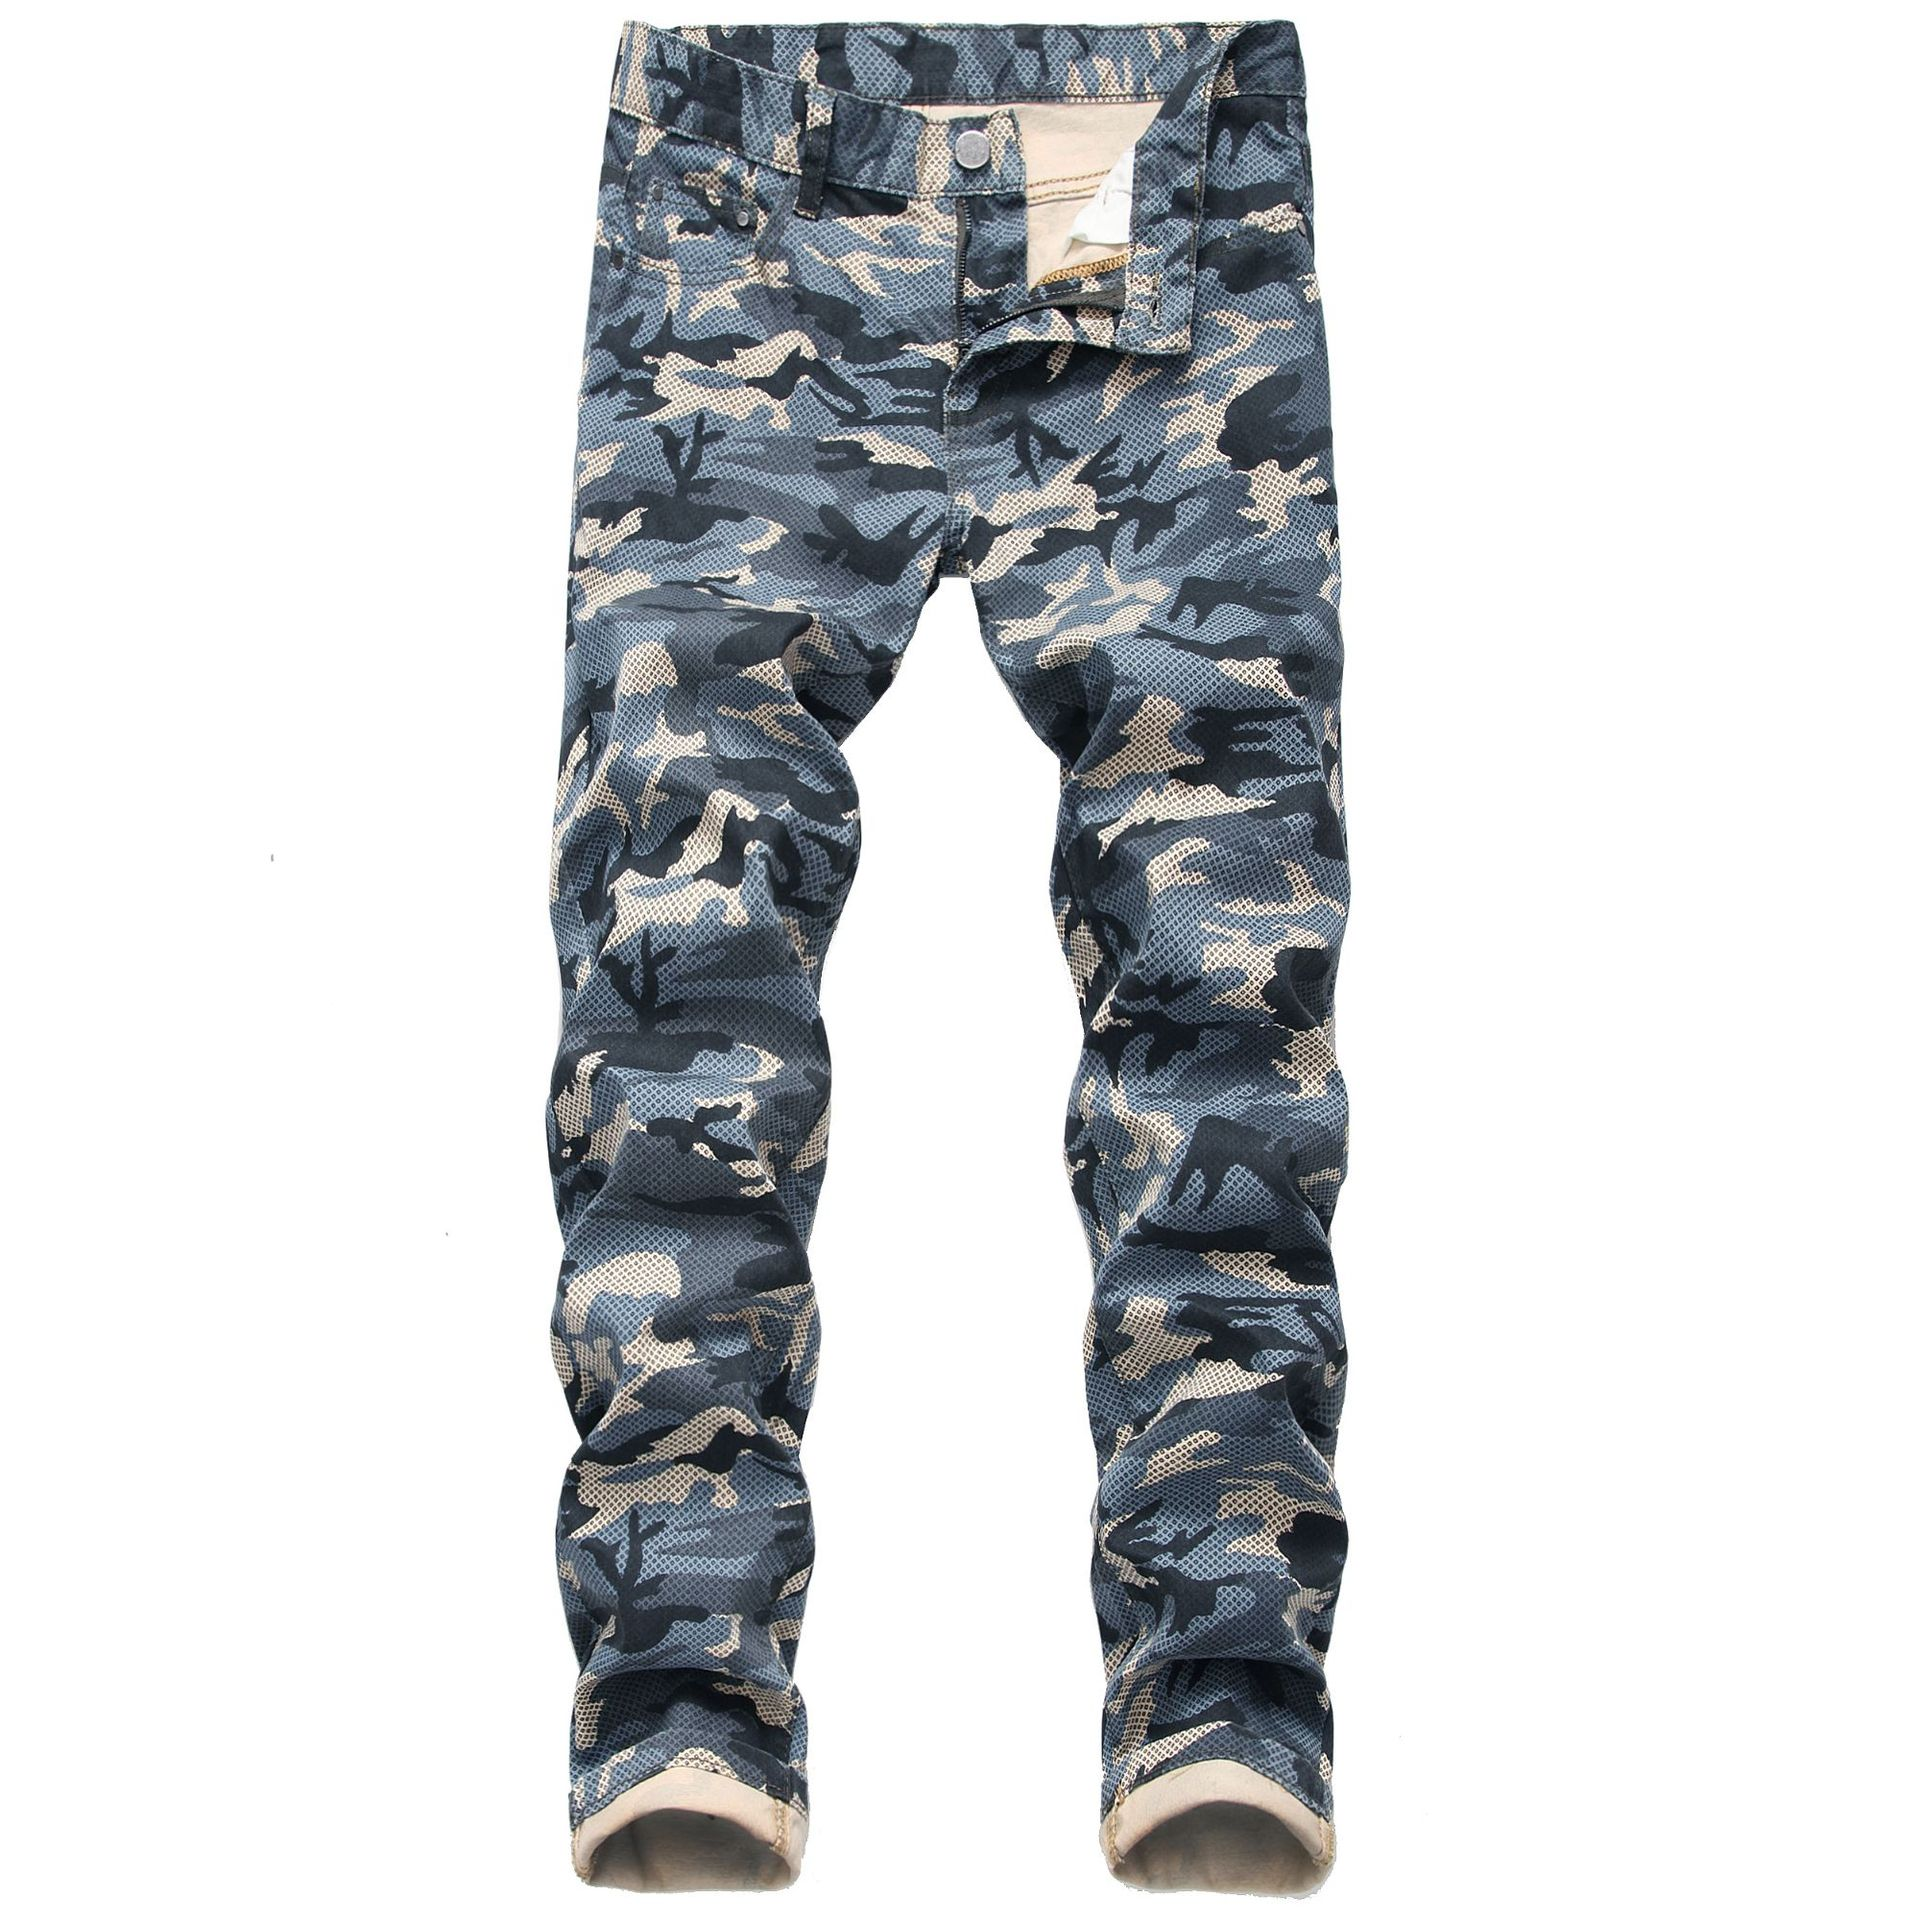 High Quality Men Casual Jeans Straight Slim Camouflage Printed elastic Jeans Male Fashion Cotton Denim Pants Plus Size 44